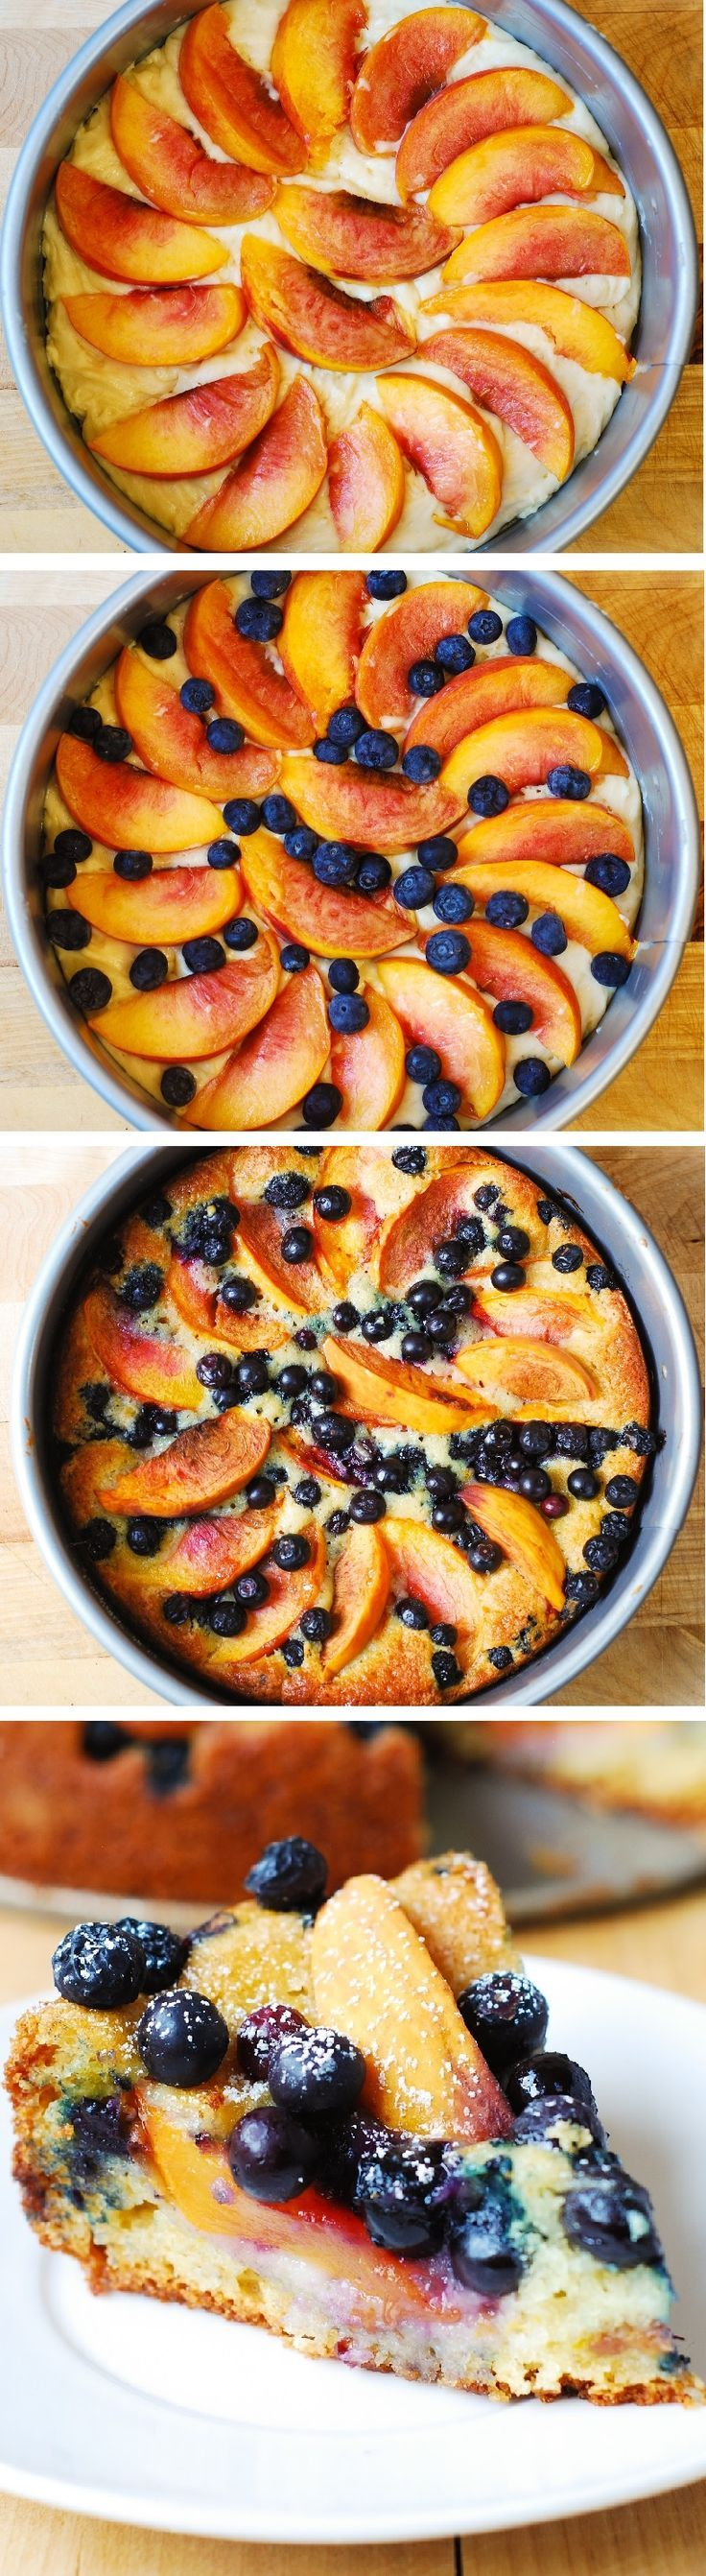 Delicious, light and fluffy Peach Blueberry Greek Yogurt Cake made in a springform baking pan. Greek yogurt gives cake a richer texture! JuliasAlbum.com #berries #cake #breakfast